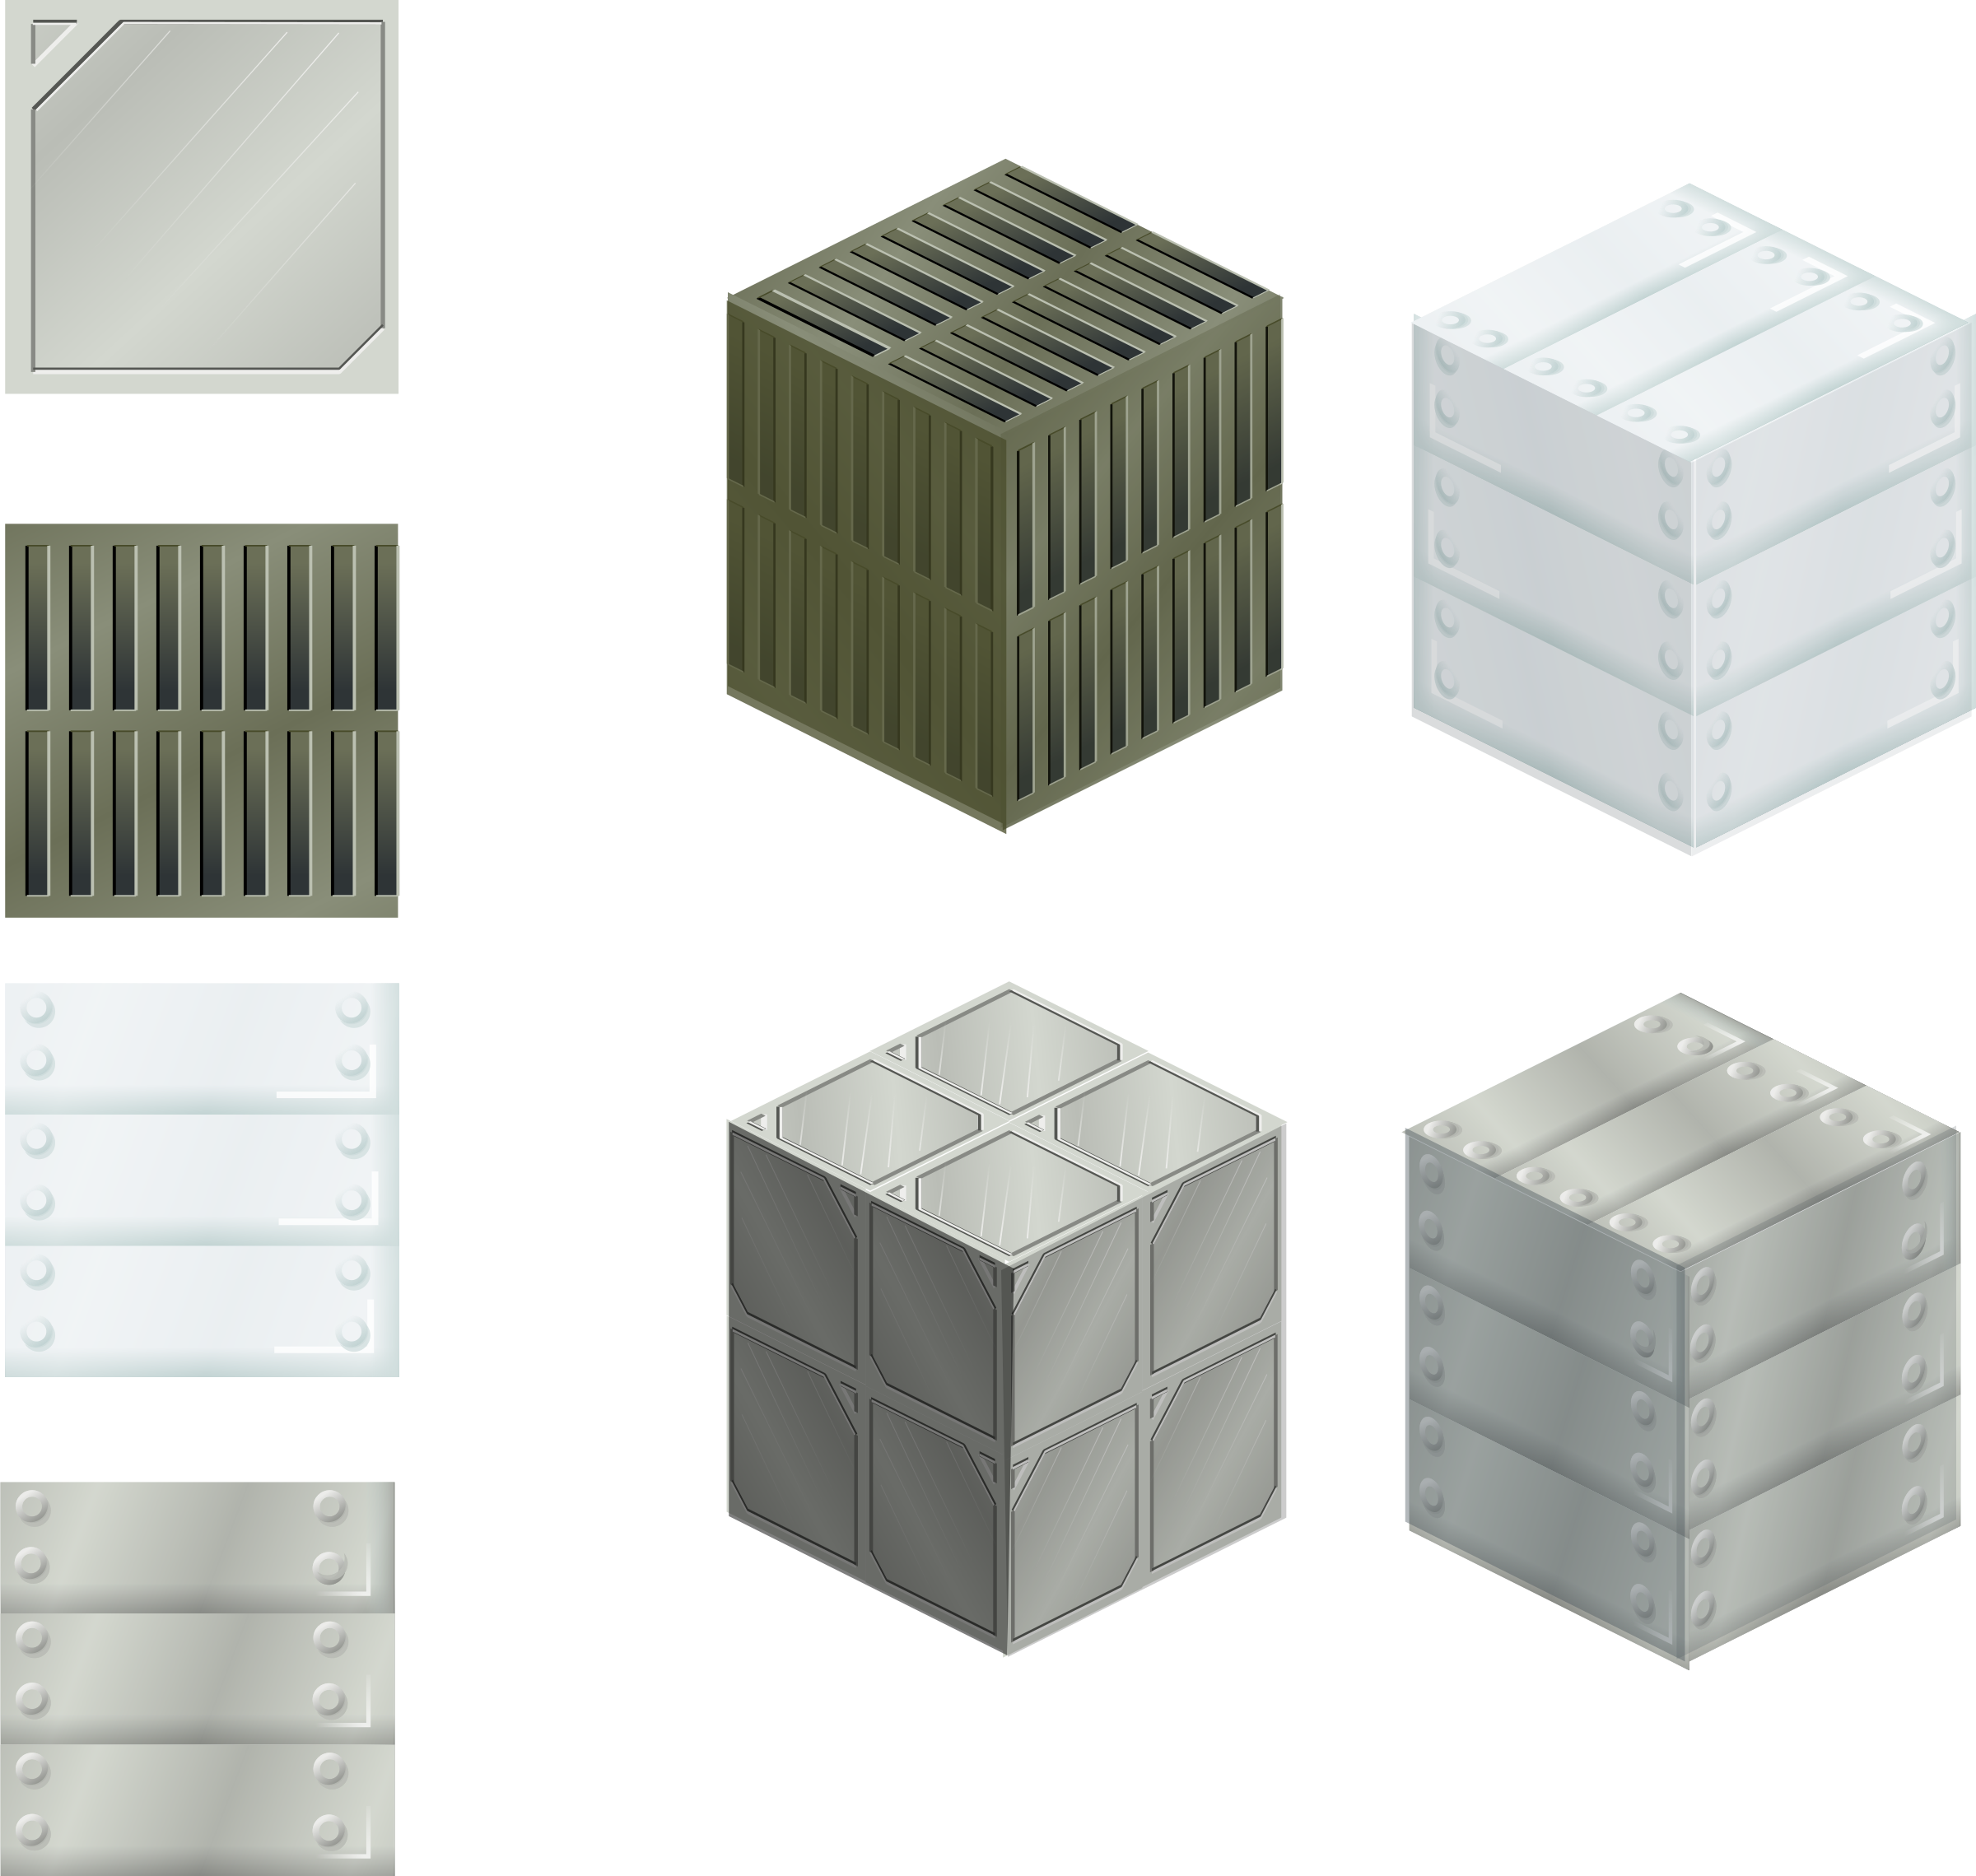 set of metalic tiles by rg1024